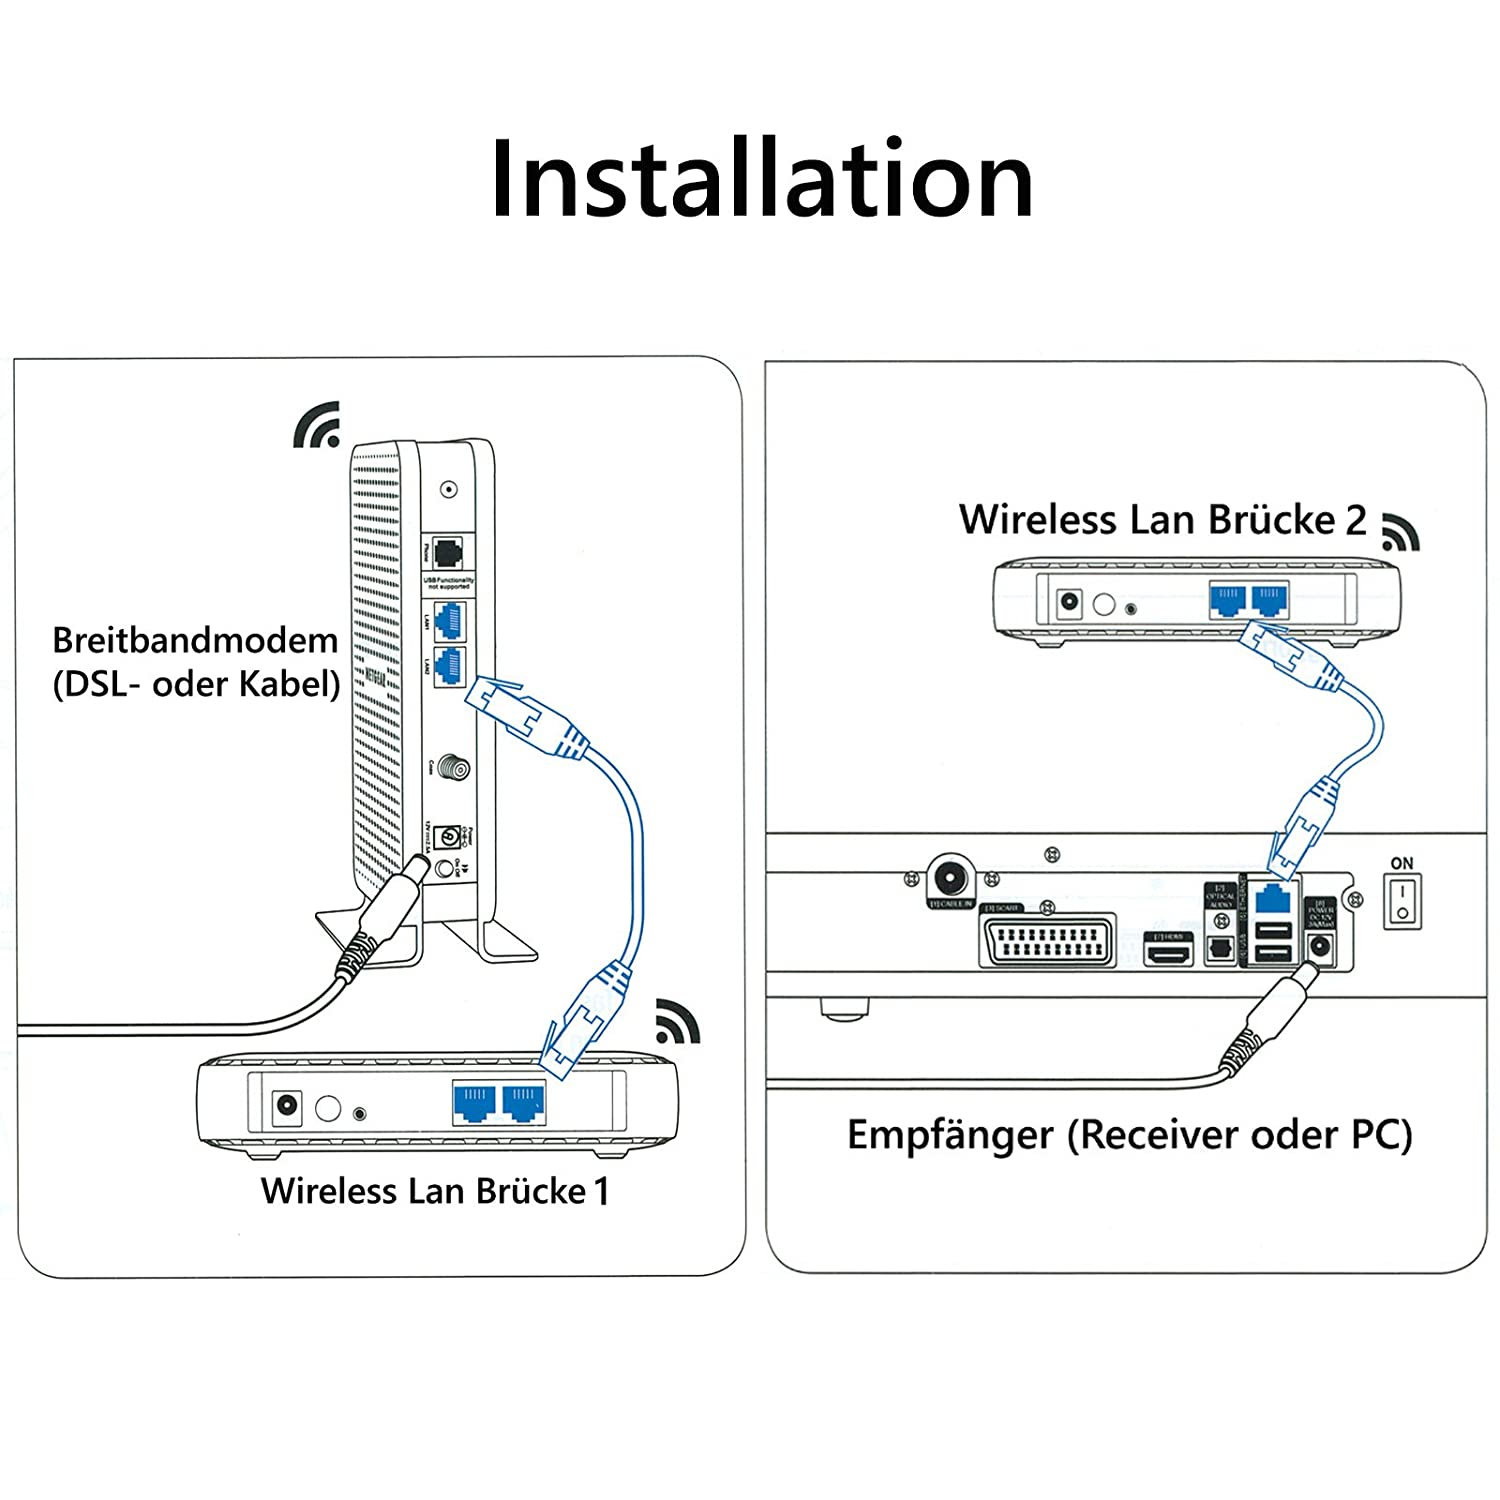 Wlan Modul Passend Fr Sky Receiver Und Smart Tv Wireless Lan Diagram Computer Zubehr